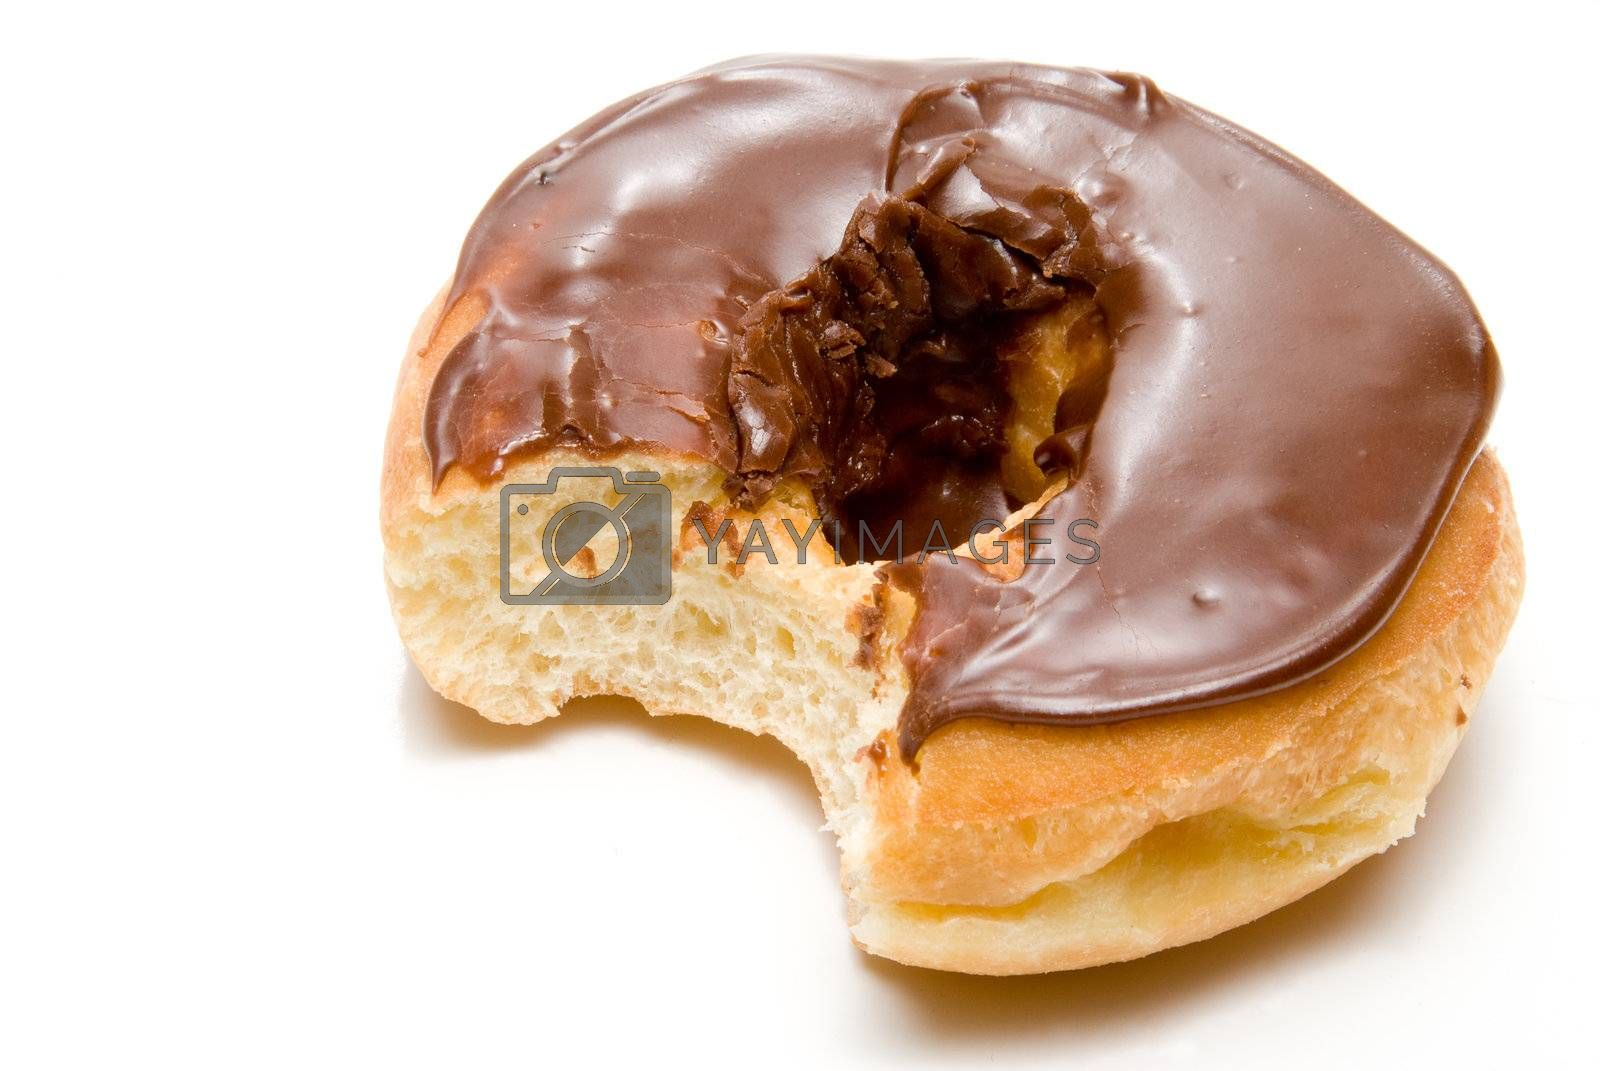 A delicious chocolate covered doughnut ready to be eaten.